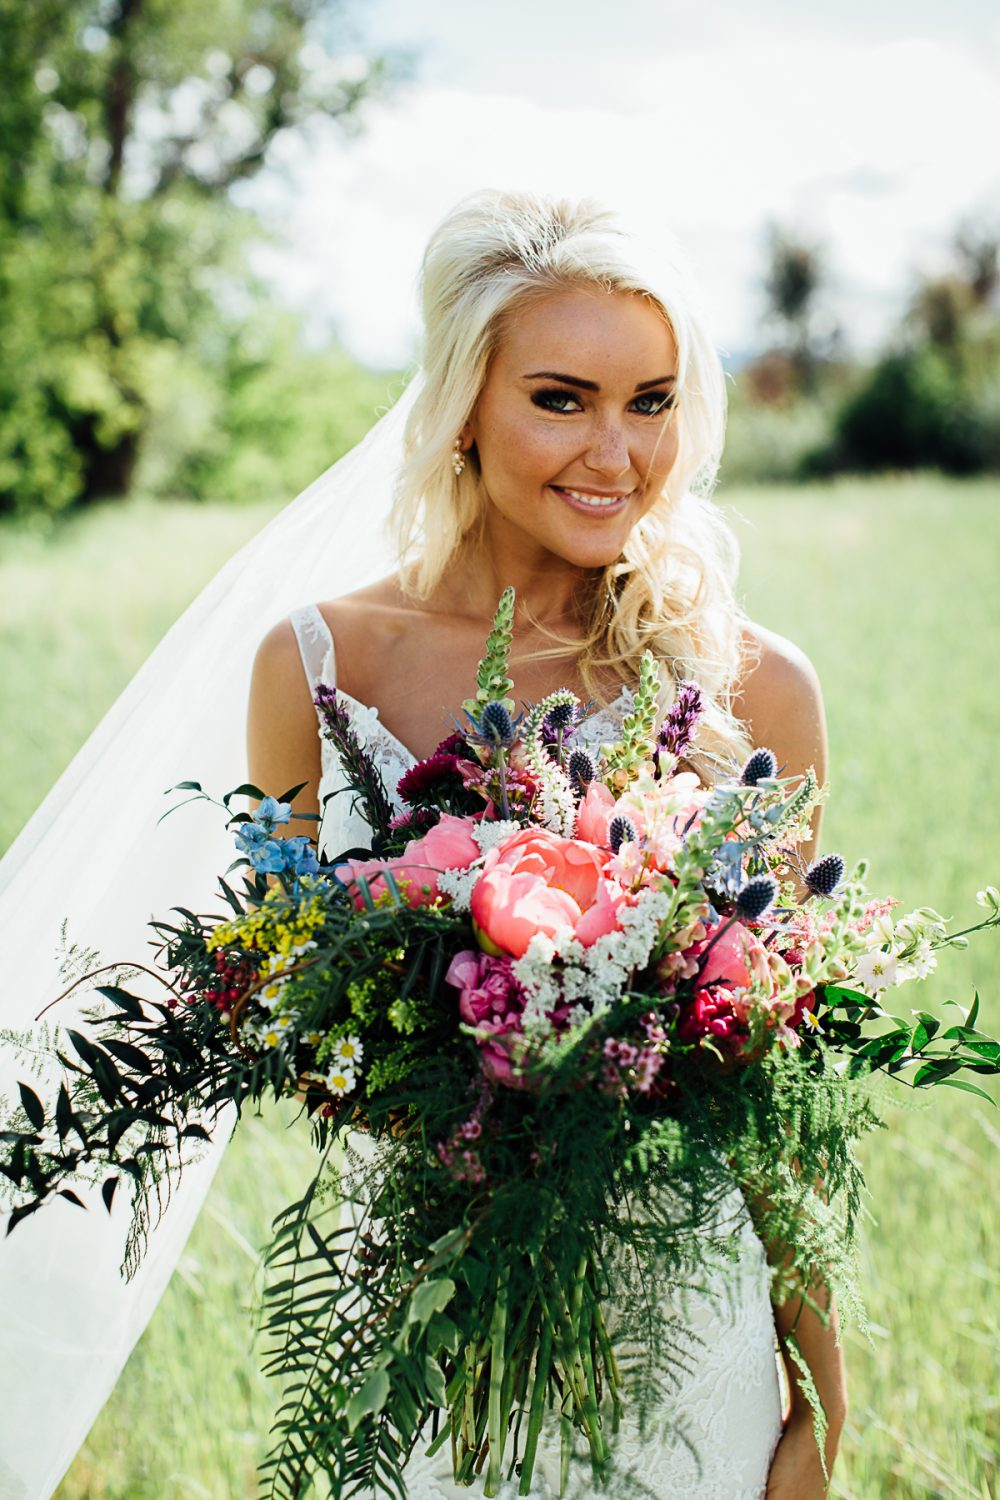 A Gorgeous Bride and Her Bridal Bouquet